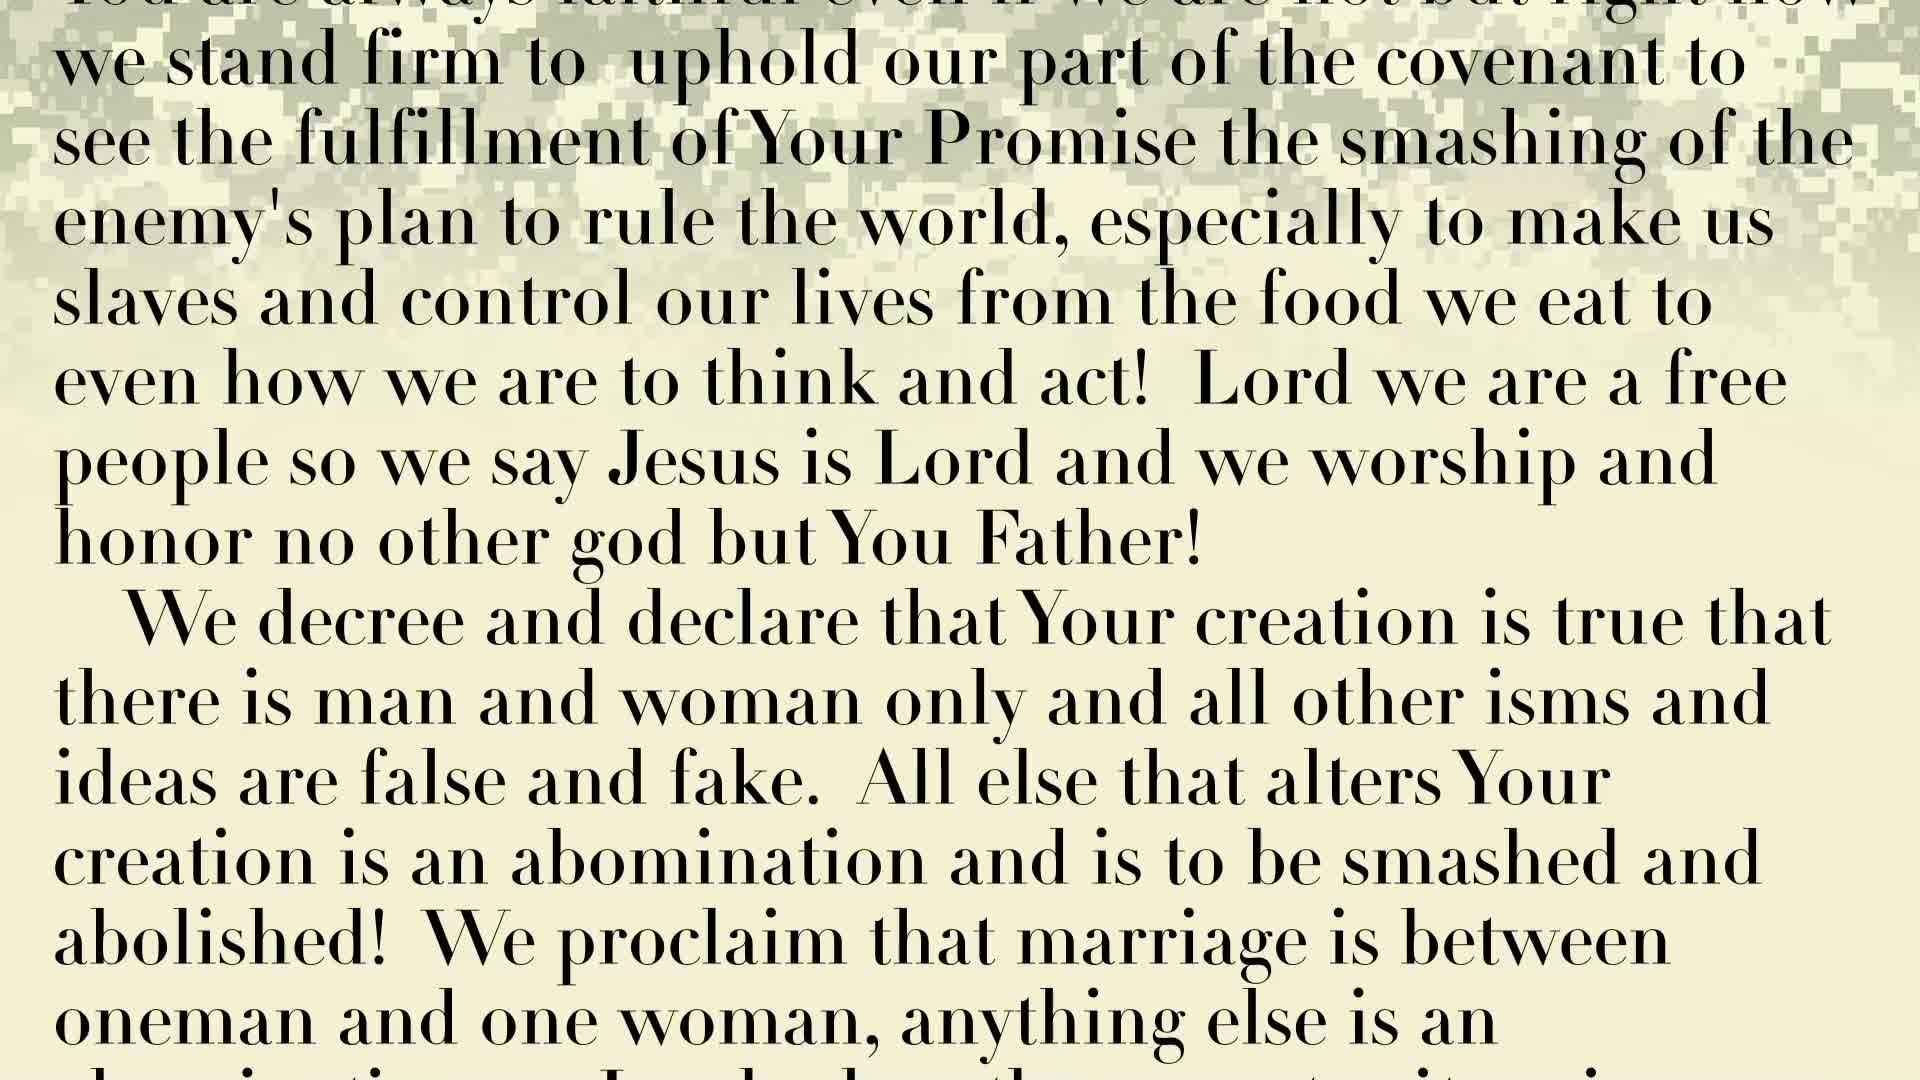 PRAYER FOCUS: GOD SEE US EQUAL AS MALE AND FEMALE, BUT DO WE LIVE AS HE SEES US?